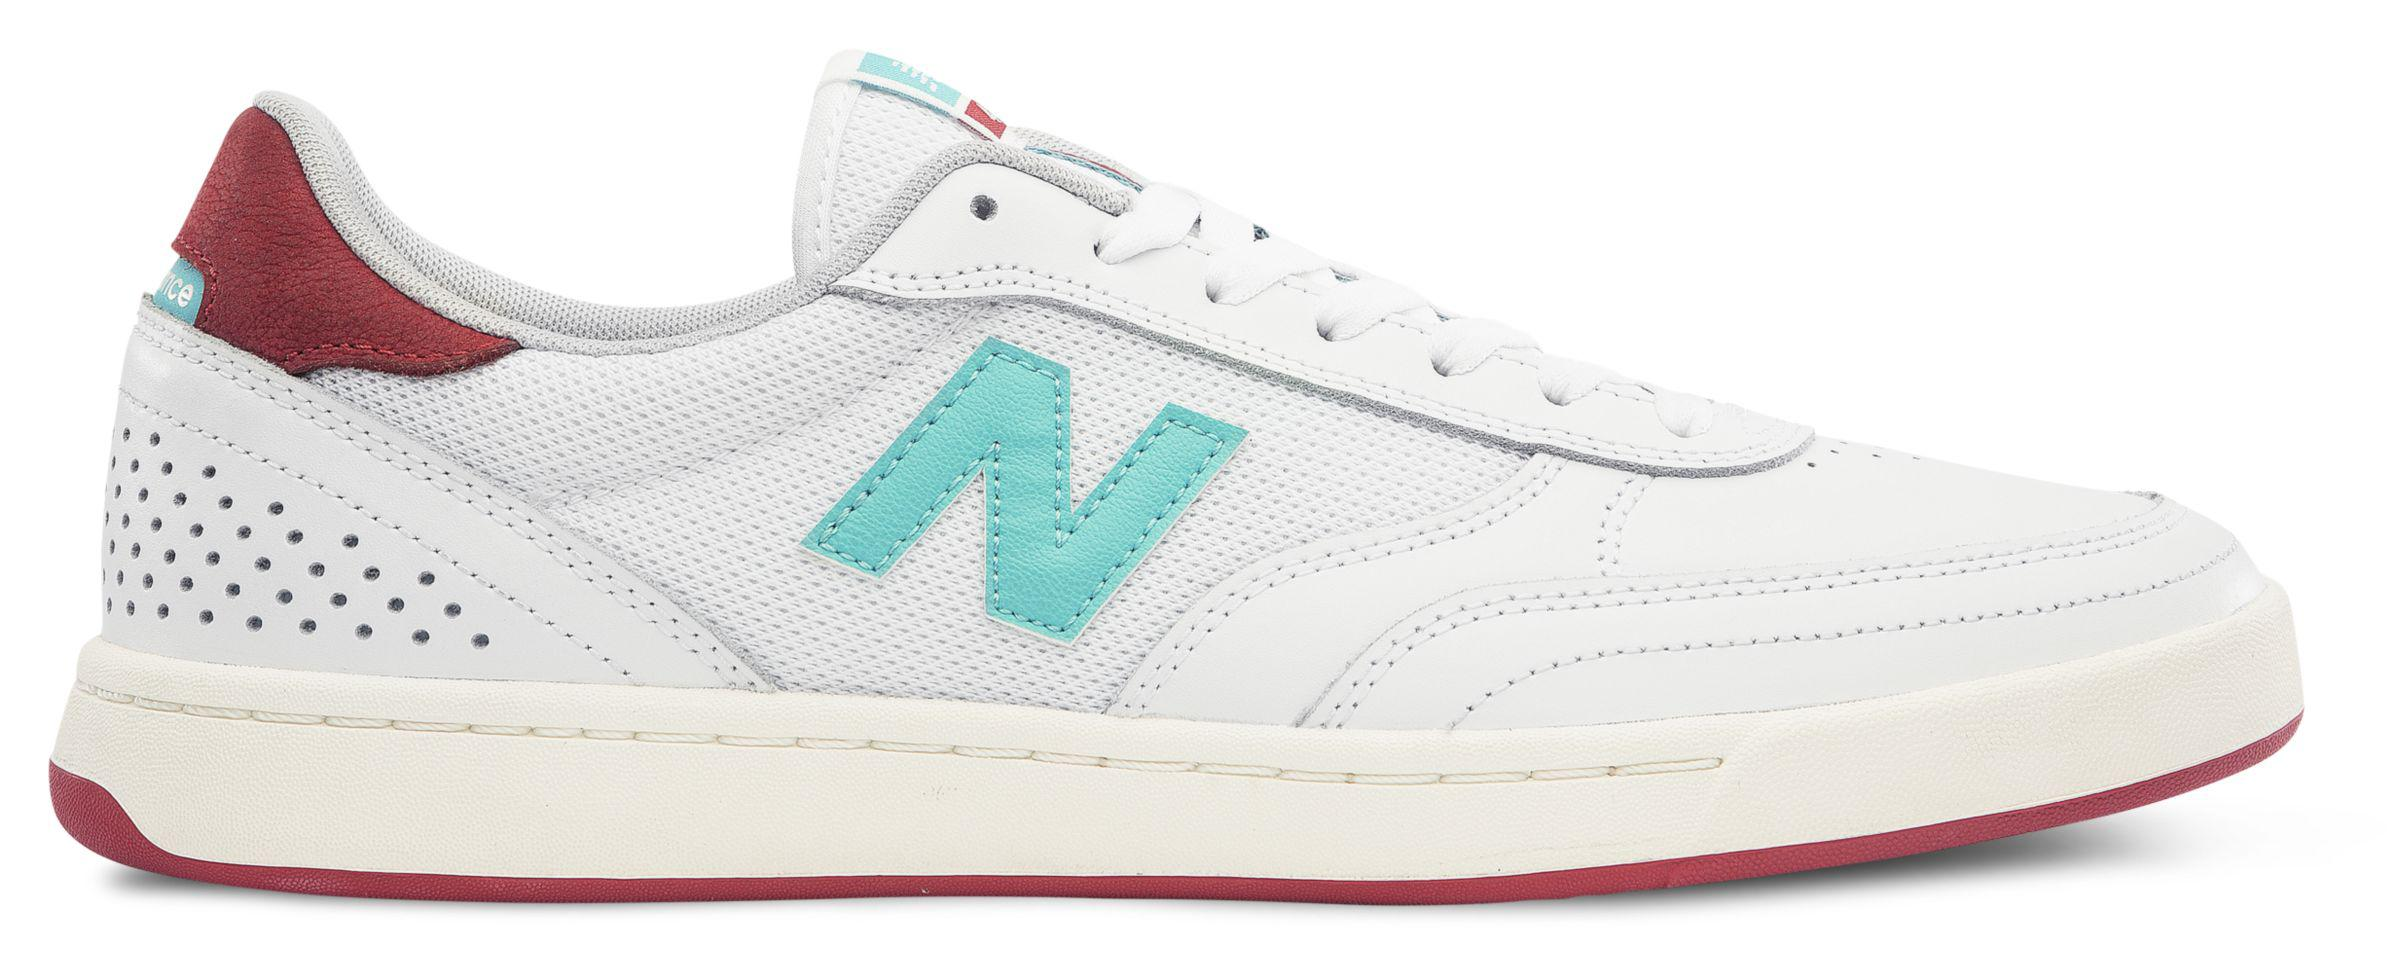 uk availability d9c8a 474d4 Lyst - New Balance Numeric 440 in White for Men